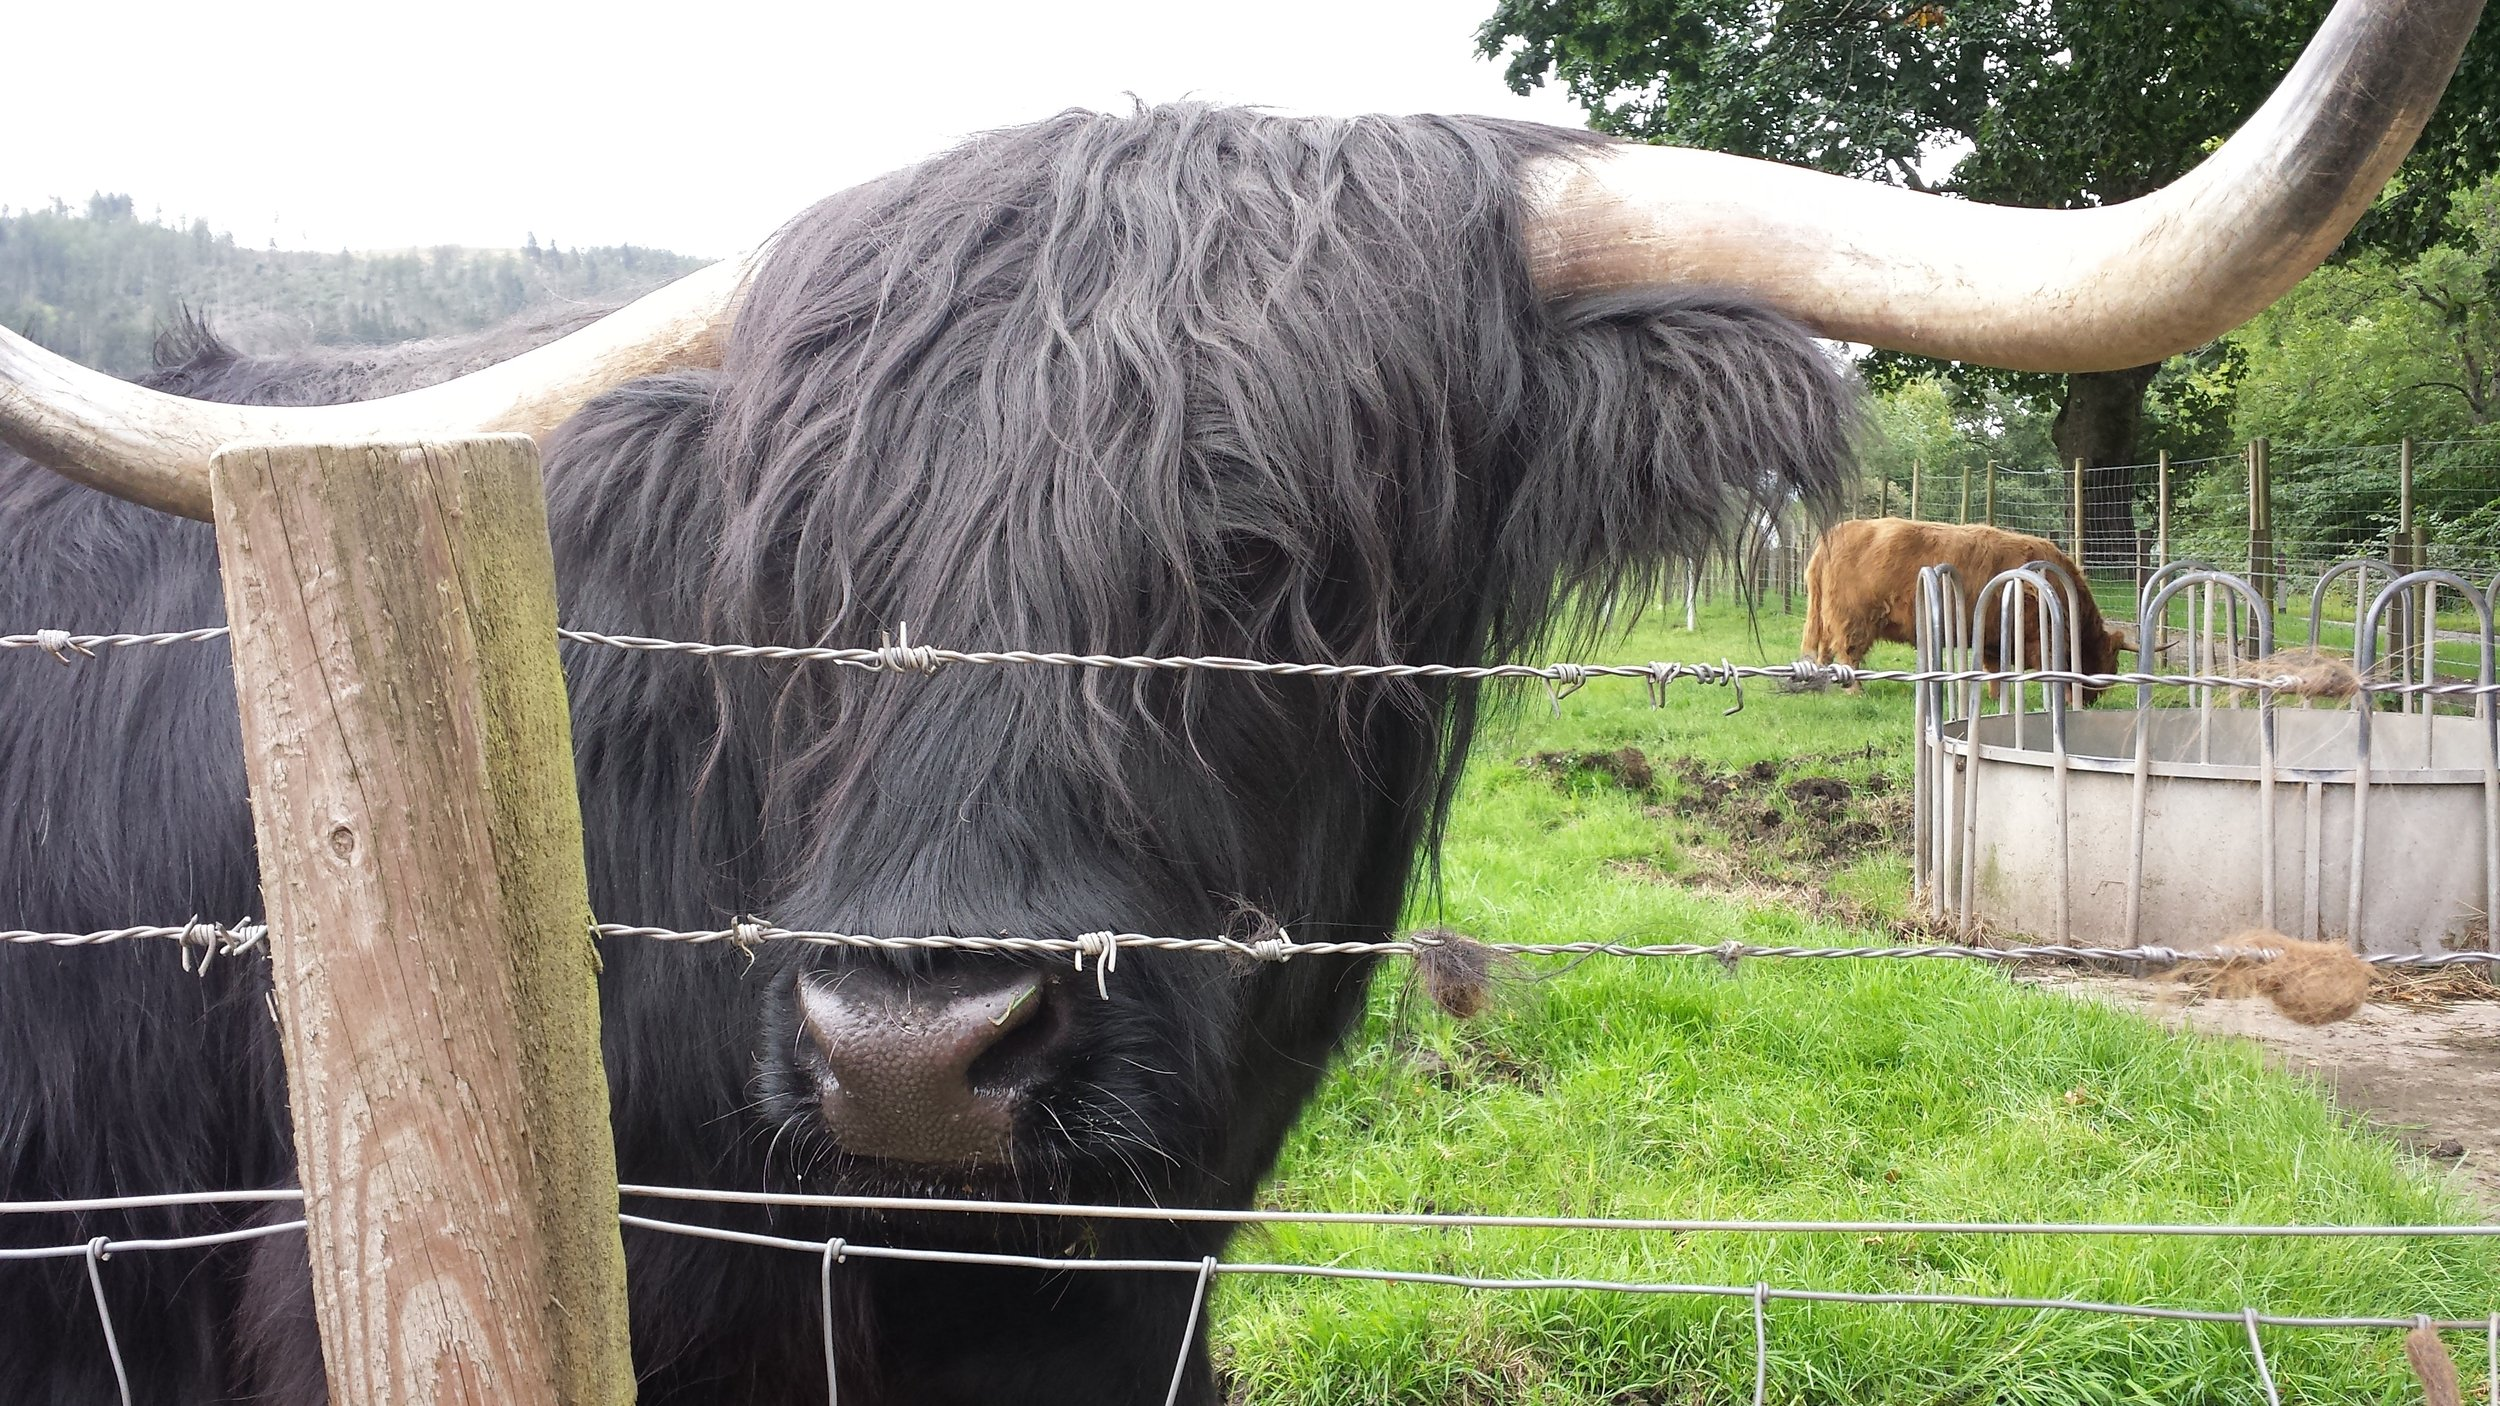 20160901_115959 trossachs highland cow.jpg